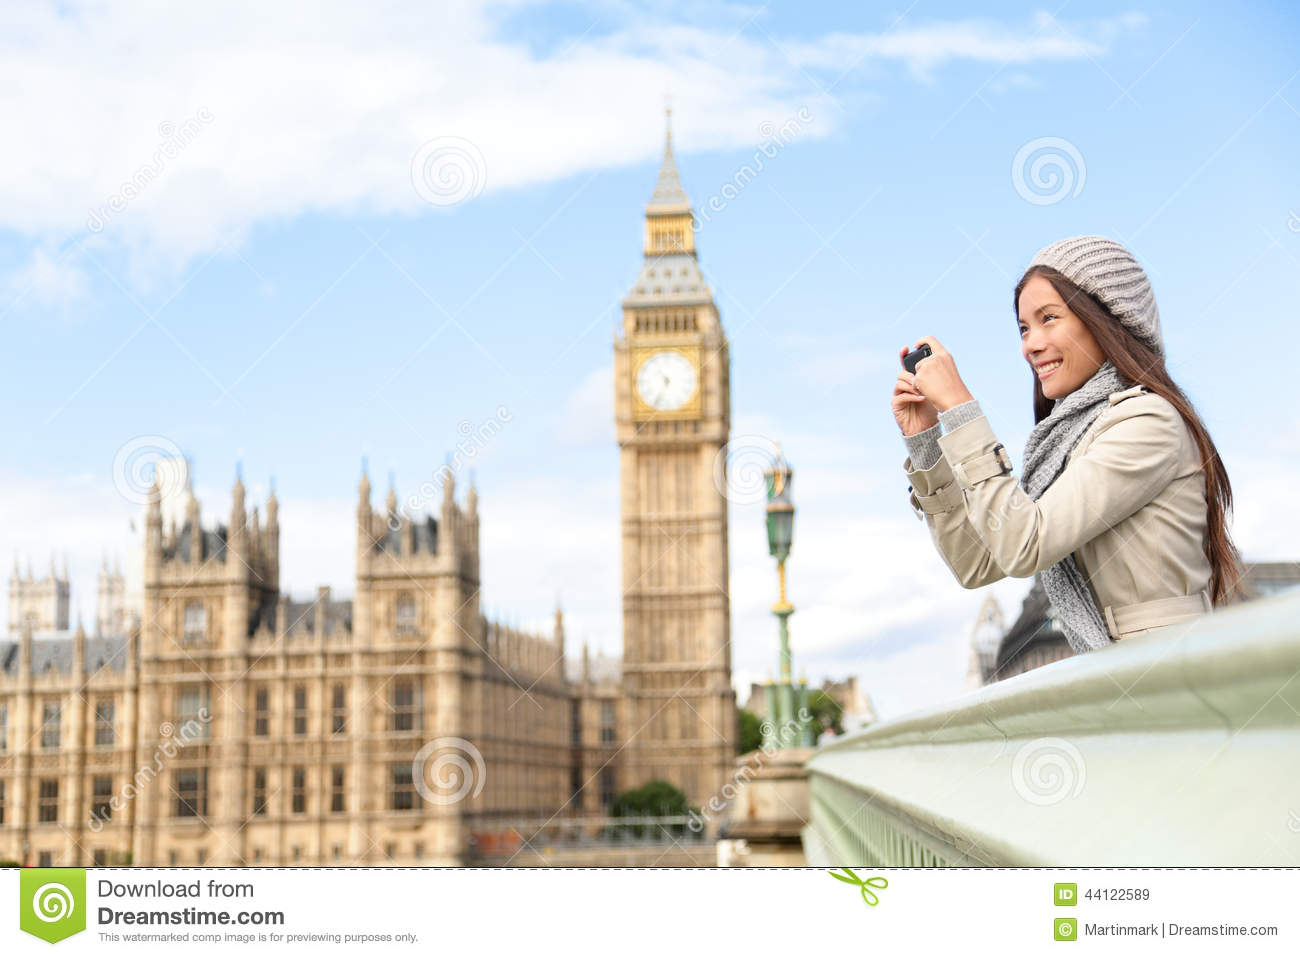 Fall Wallpaper For Cell Phone Travel Tourist In London Sightseeing Taking Photos Stock